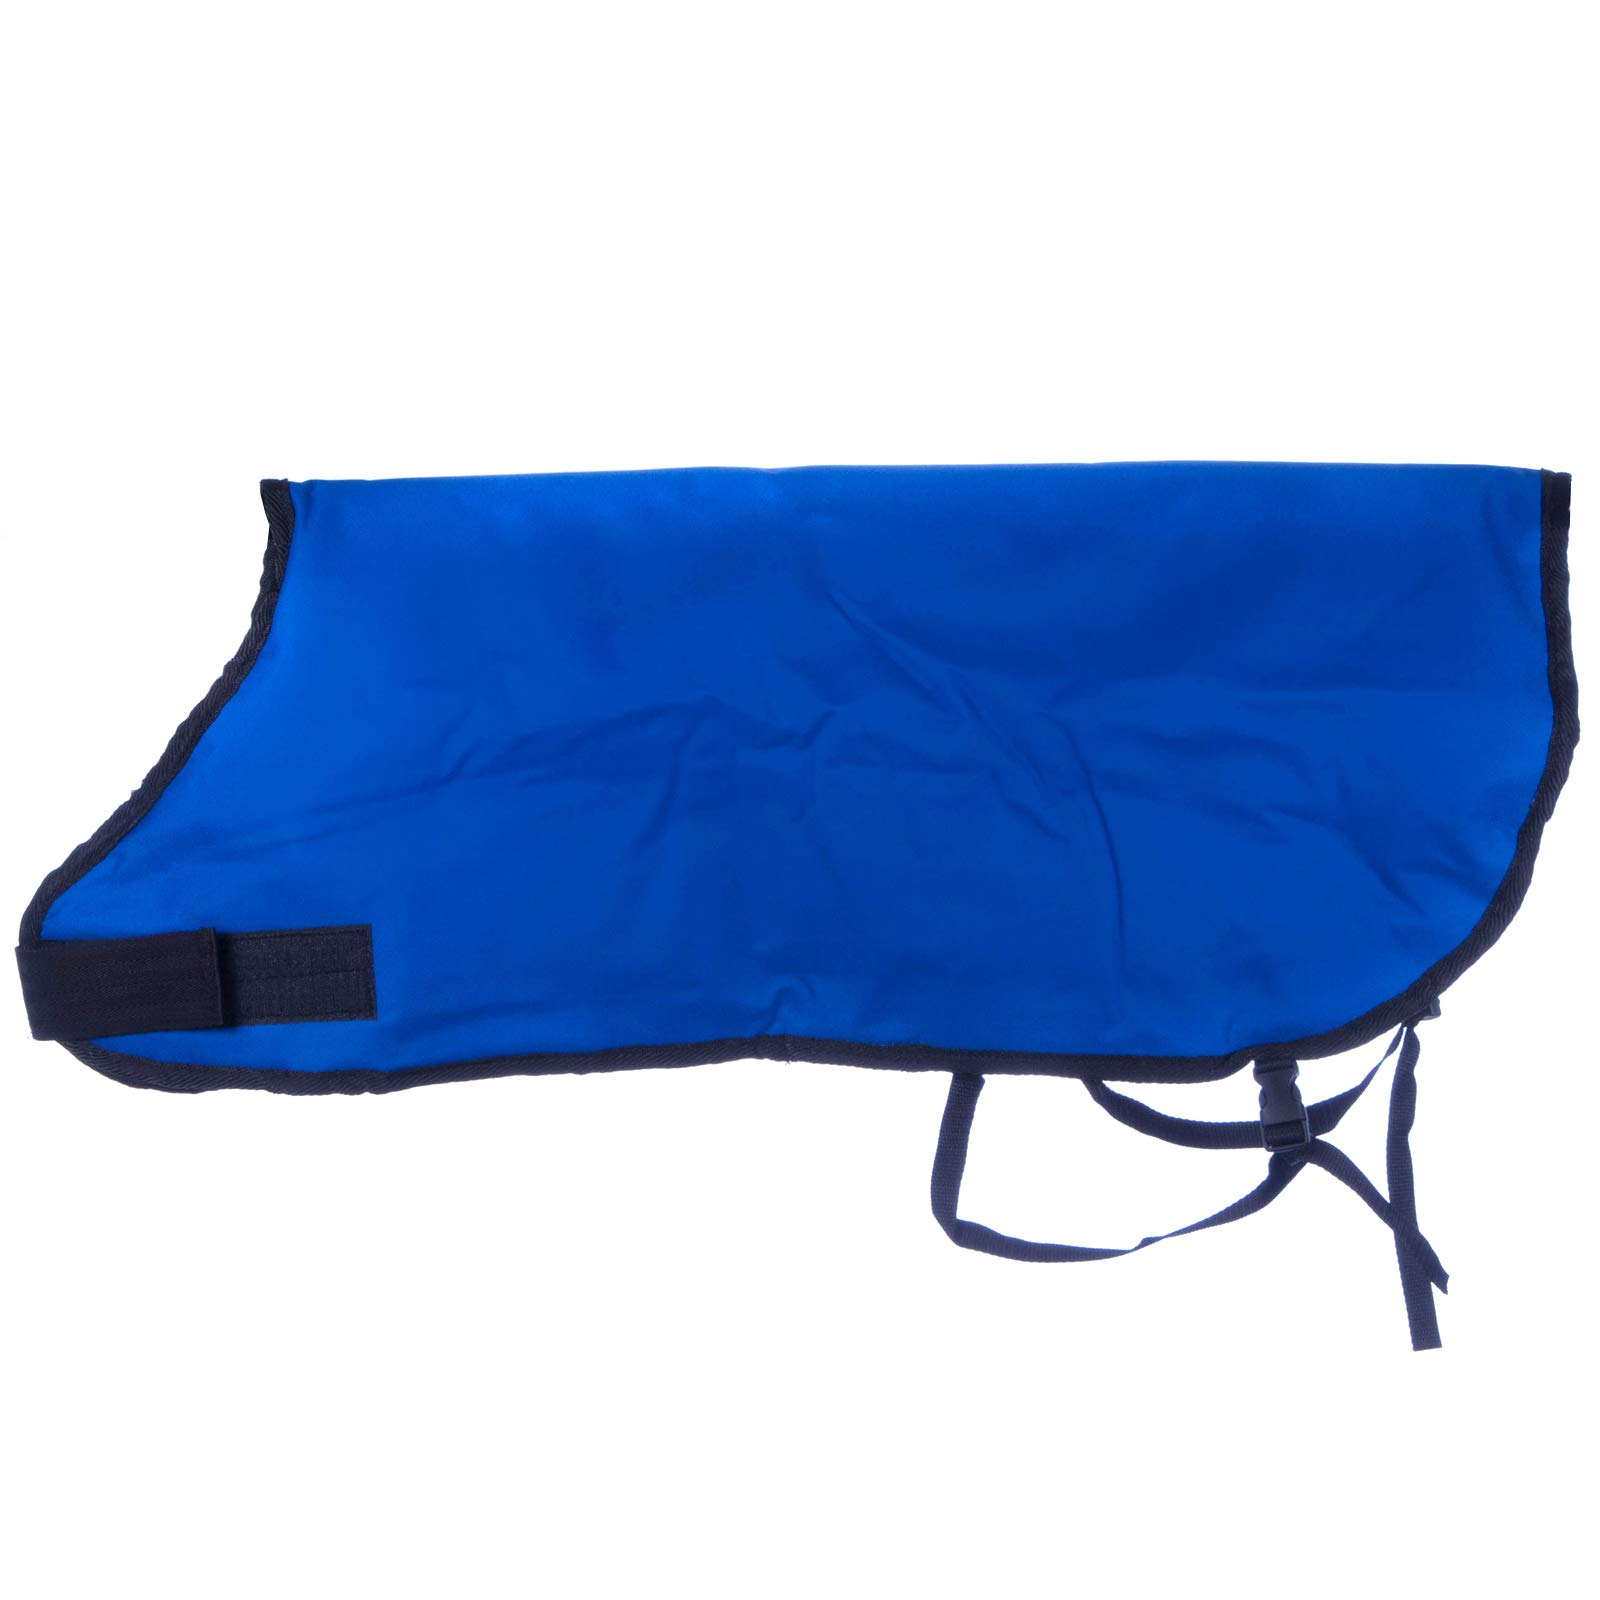 Jeffers Insulated Calf Blanket, Blue by Jeffers